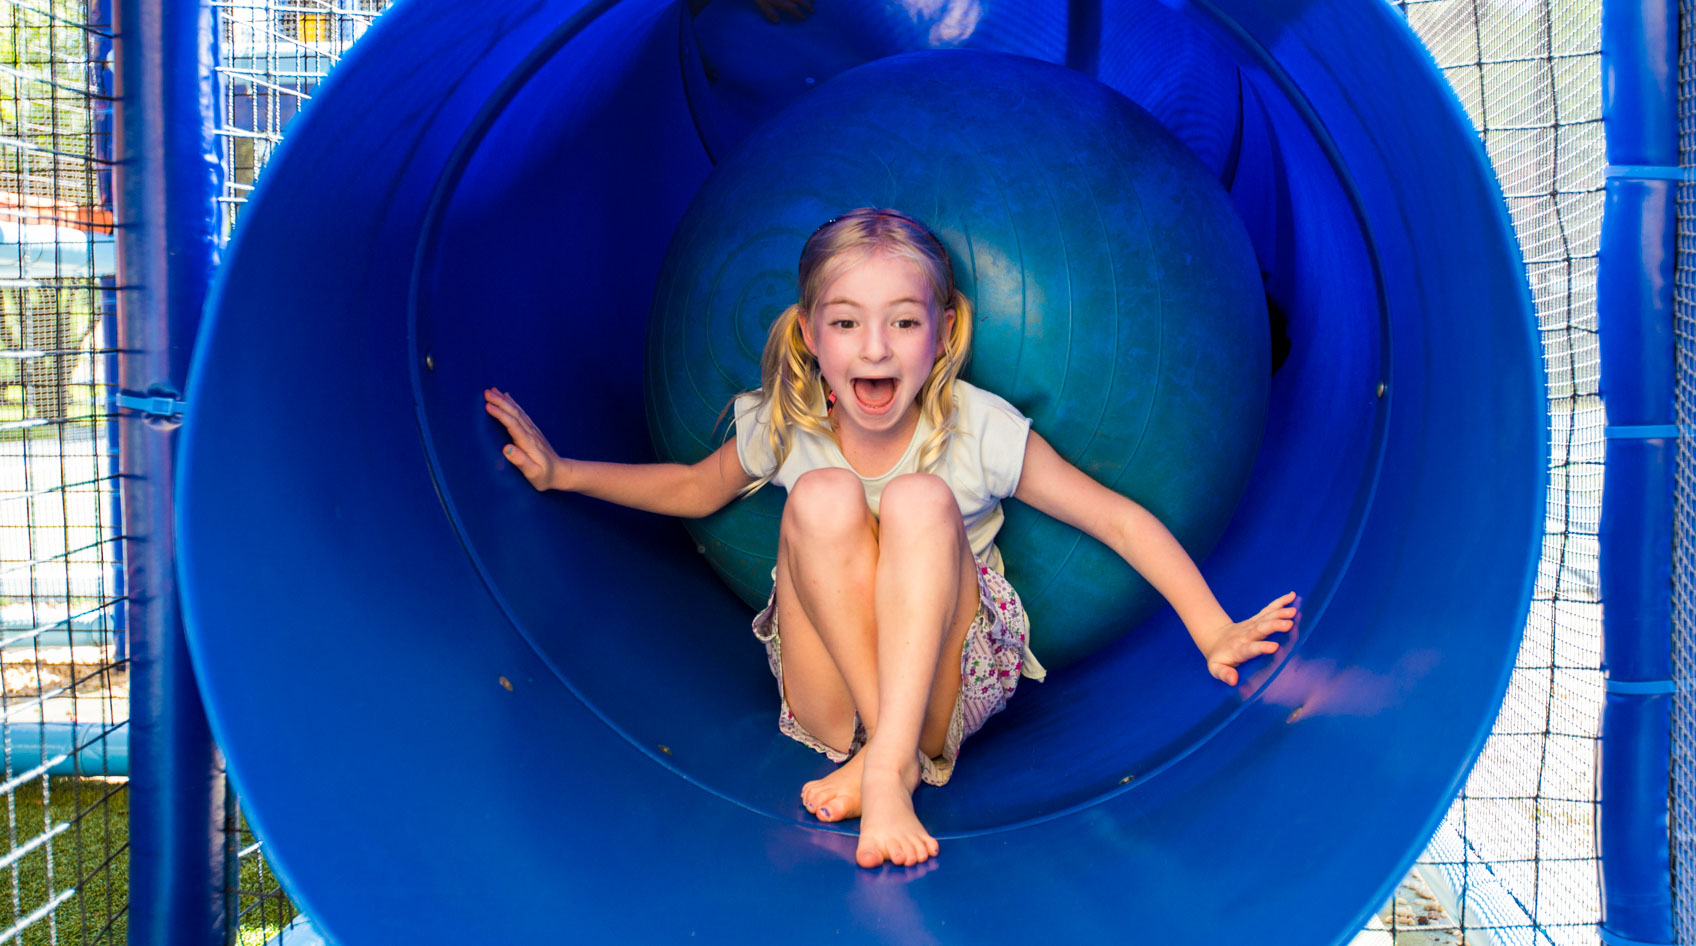 girl-on-slide